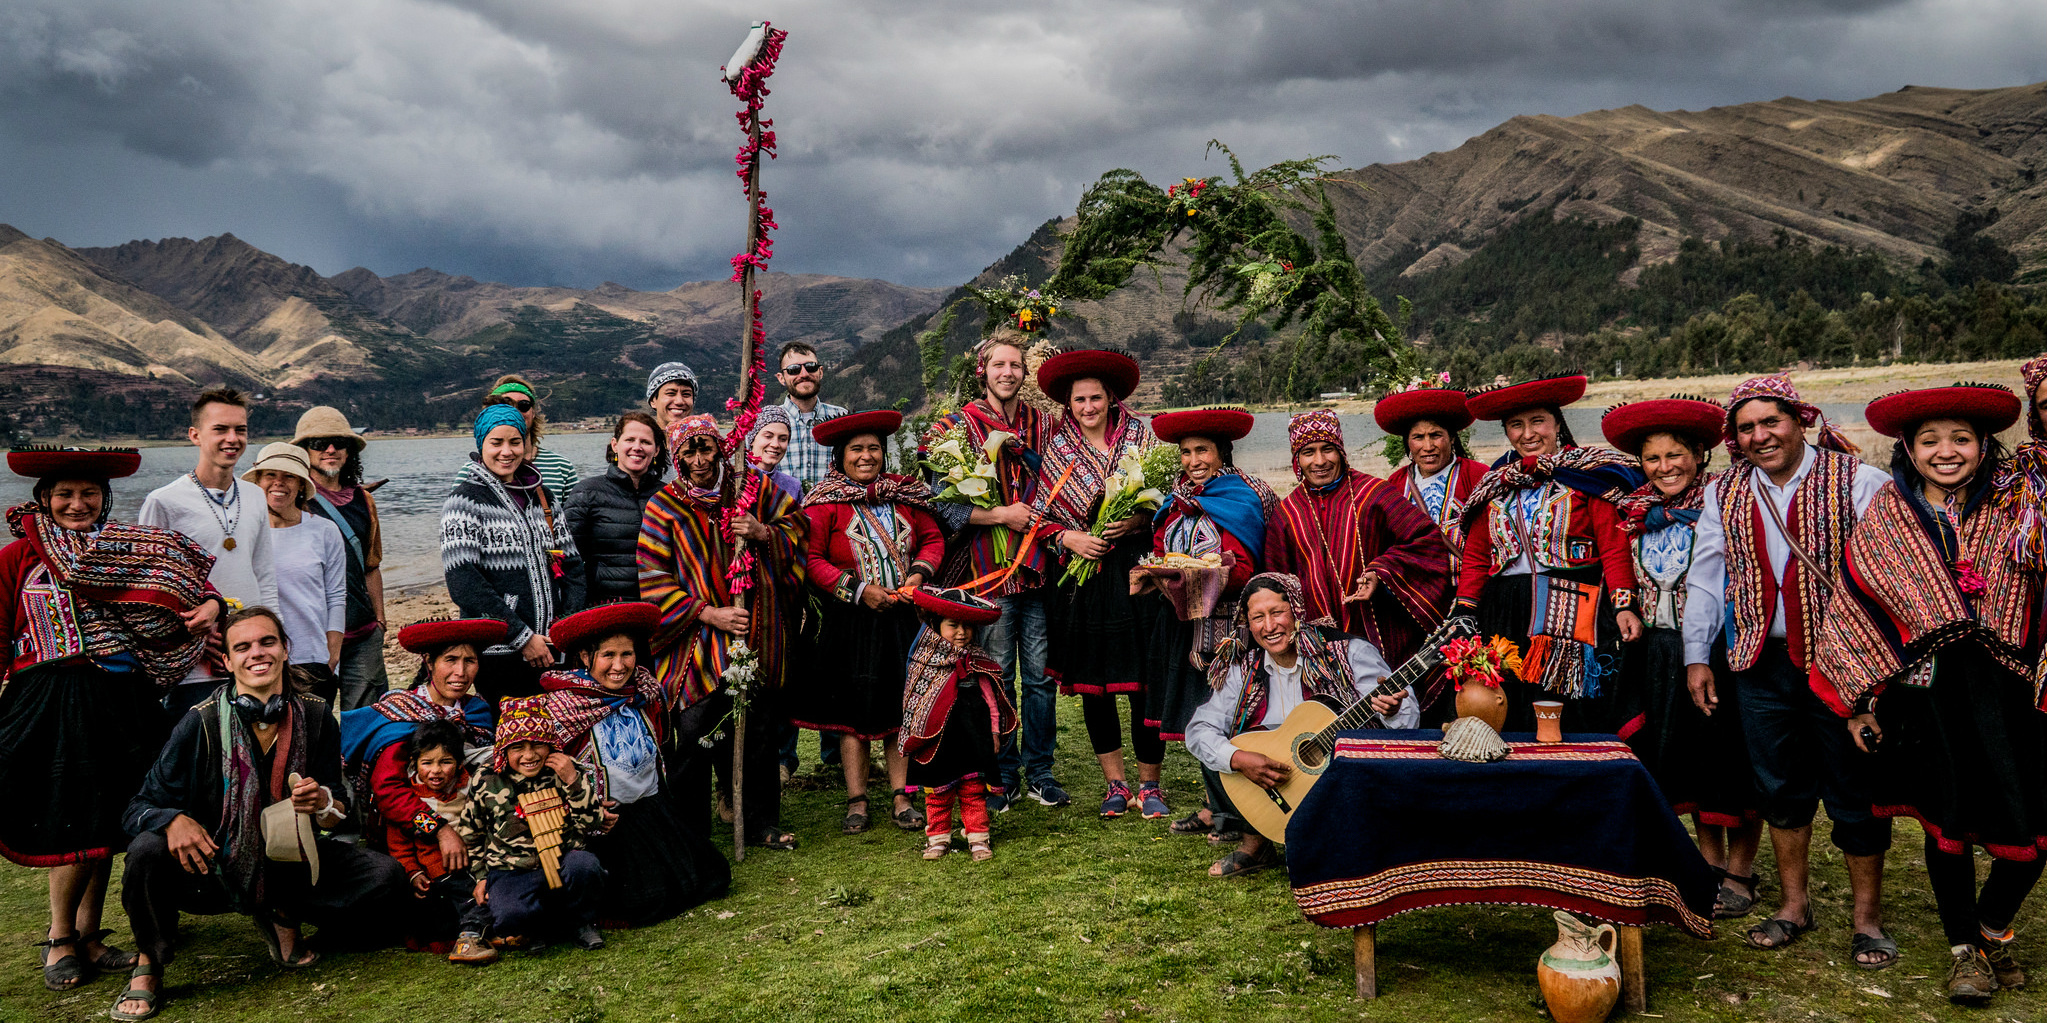 GVI participants celebrate a wedding together with community partners. Participants work closely with quechua people while volunteering in Peru with GVI.